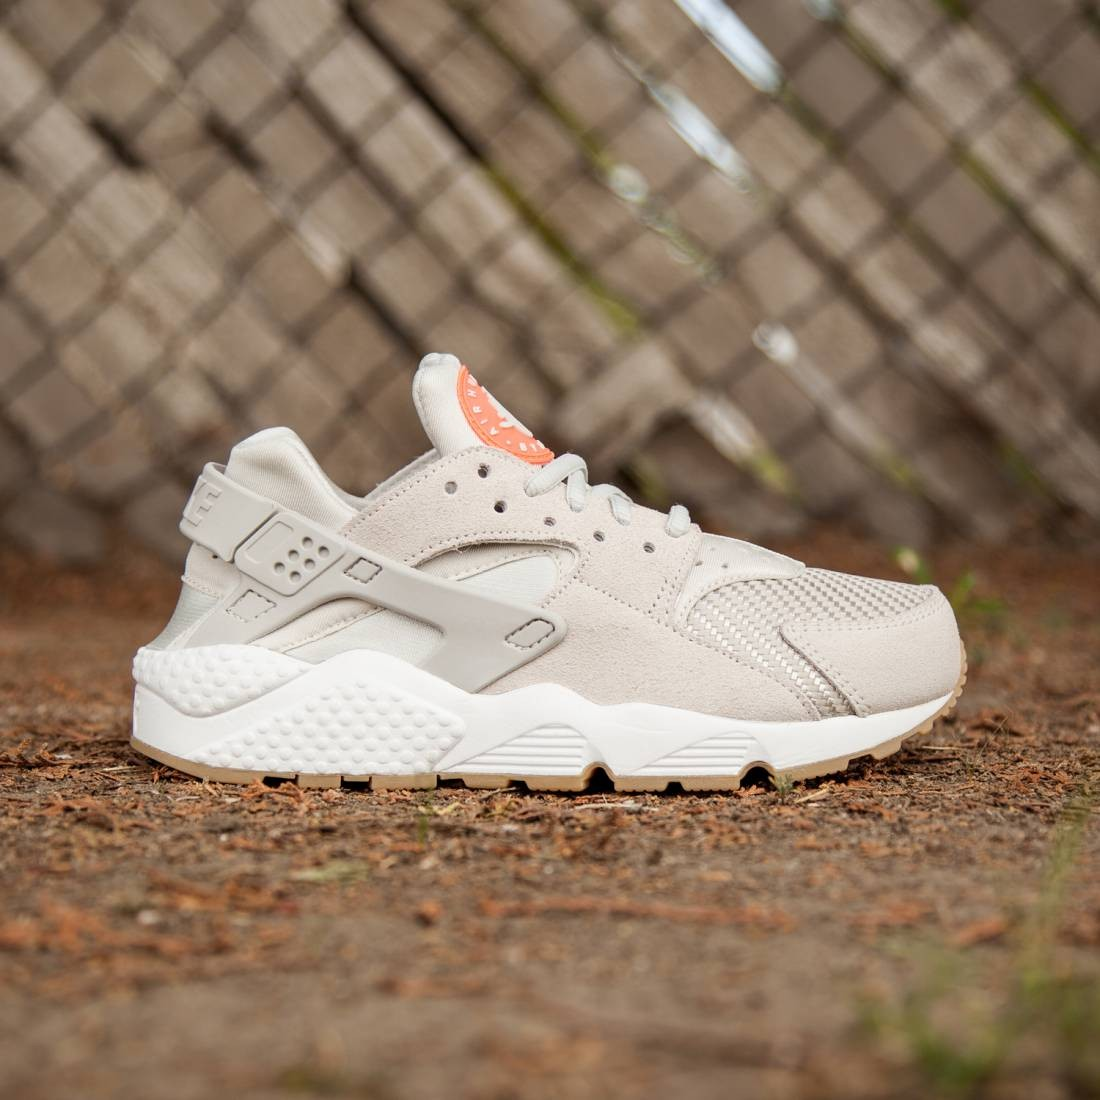 new images of united states lower price with nike w air huarache run txt | Benvenuto per comprare ...